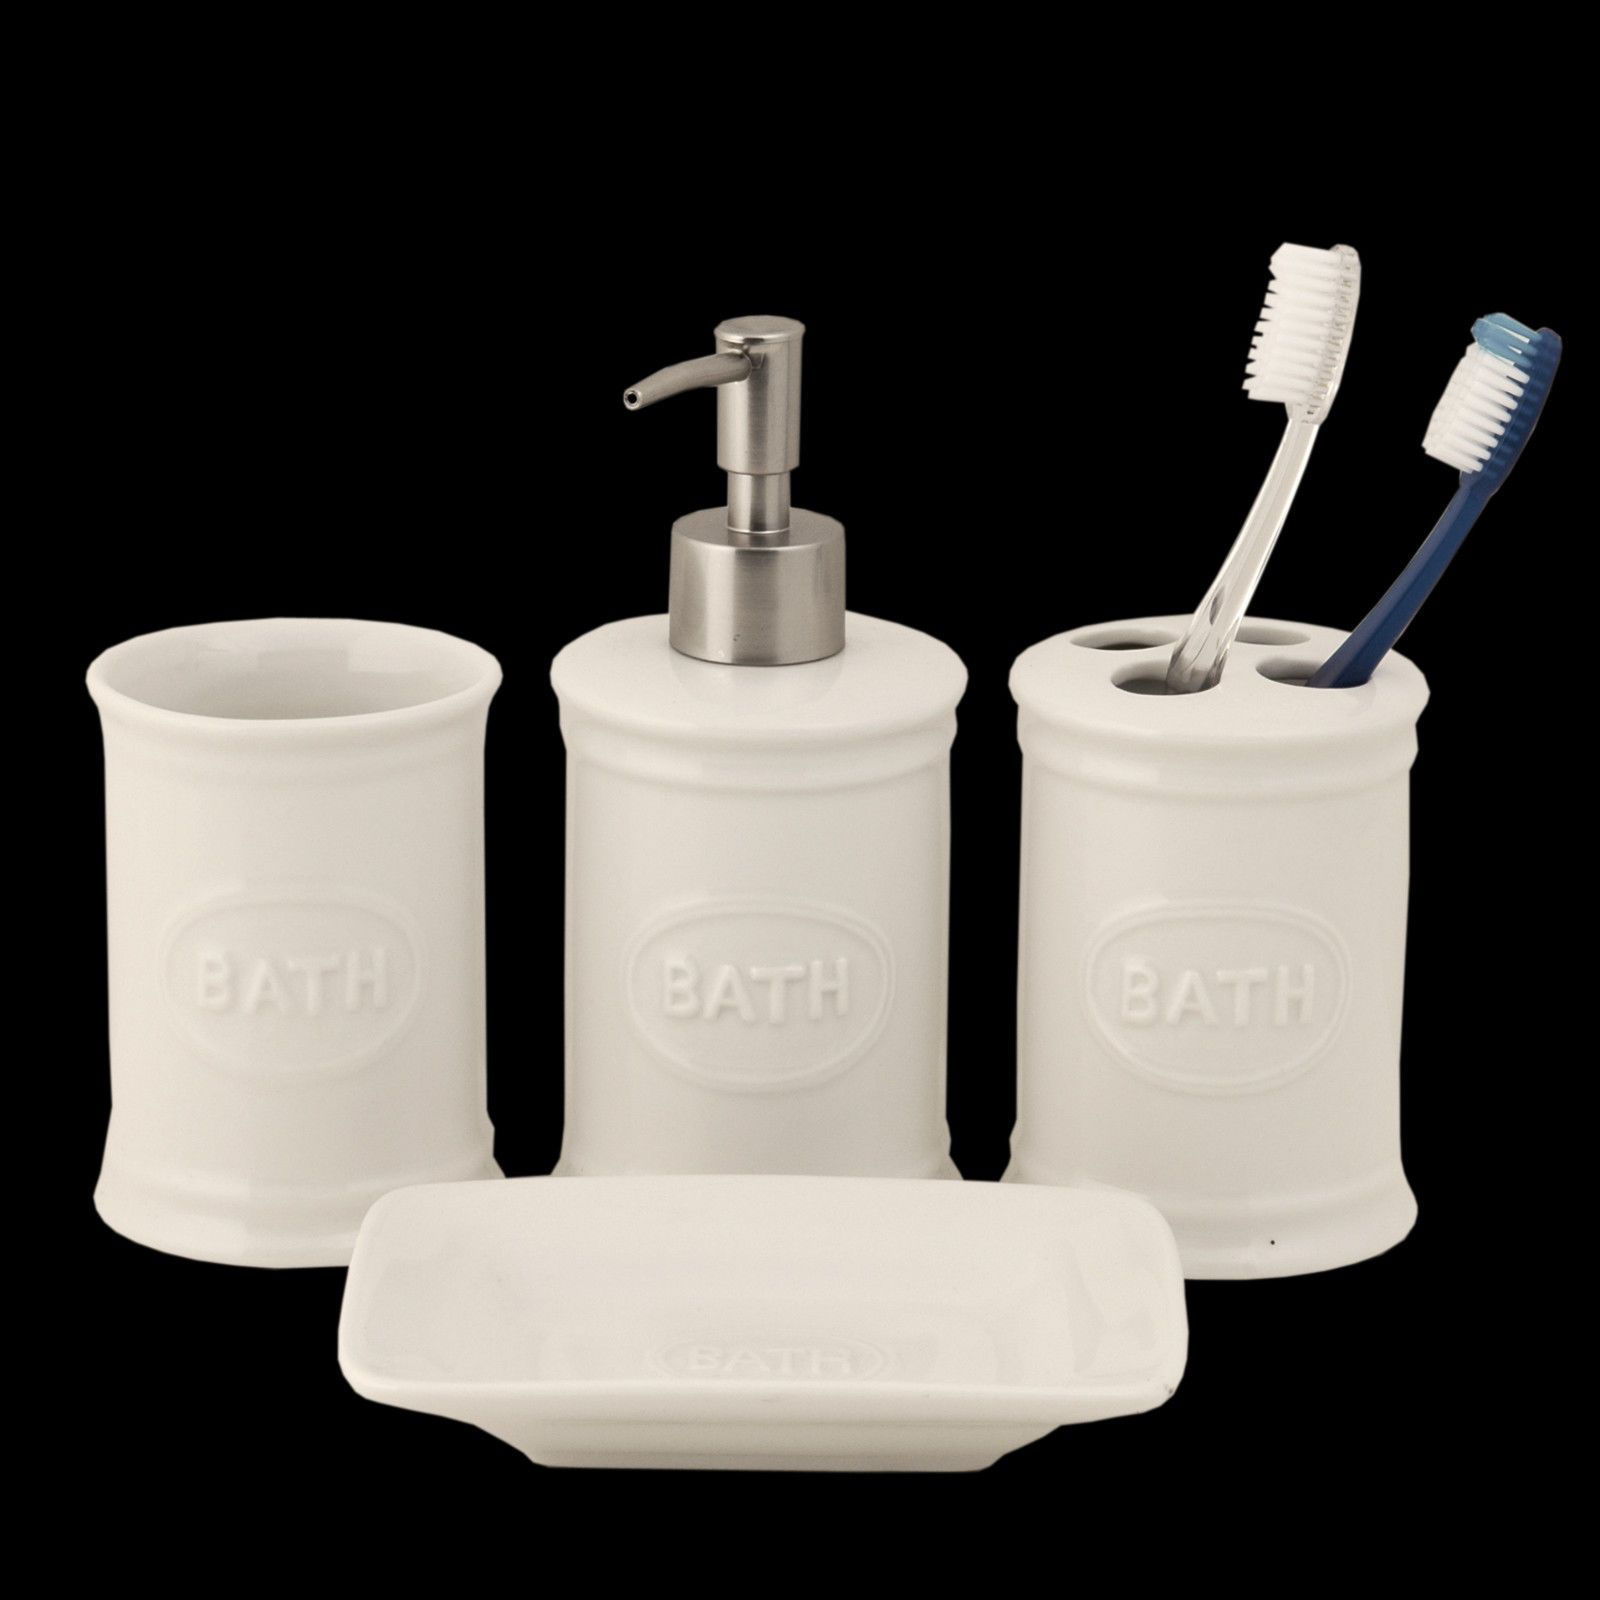 Bath Ceramic 4 Piece Bathroom Set W Soap Dispenser Dish Toothbrush